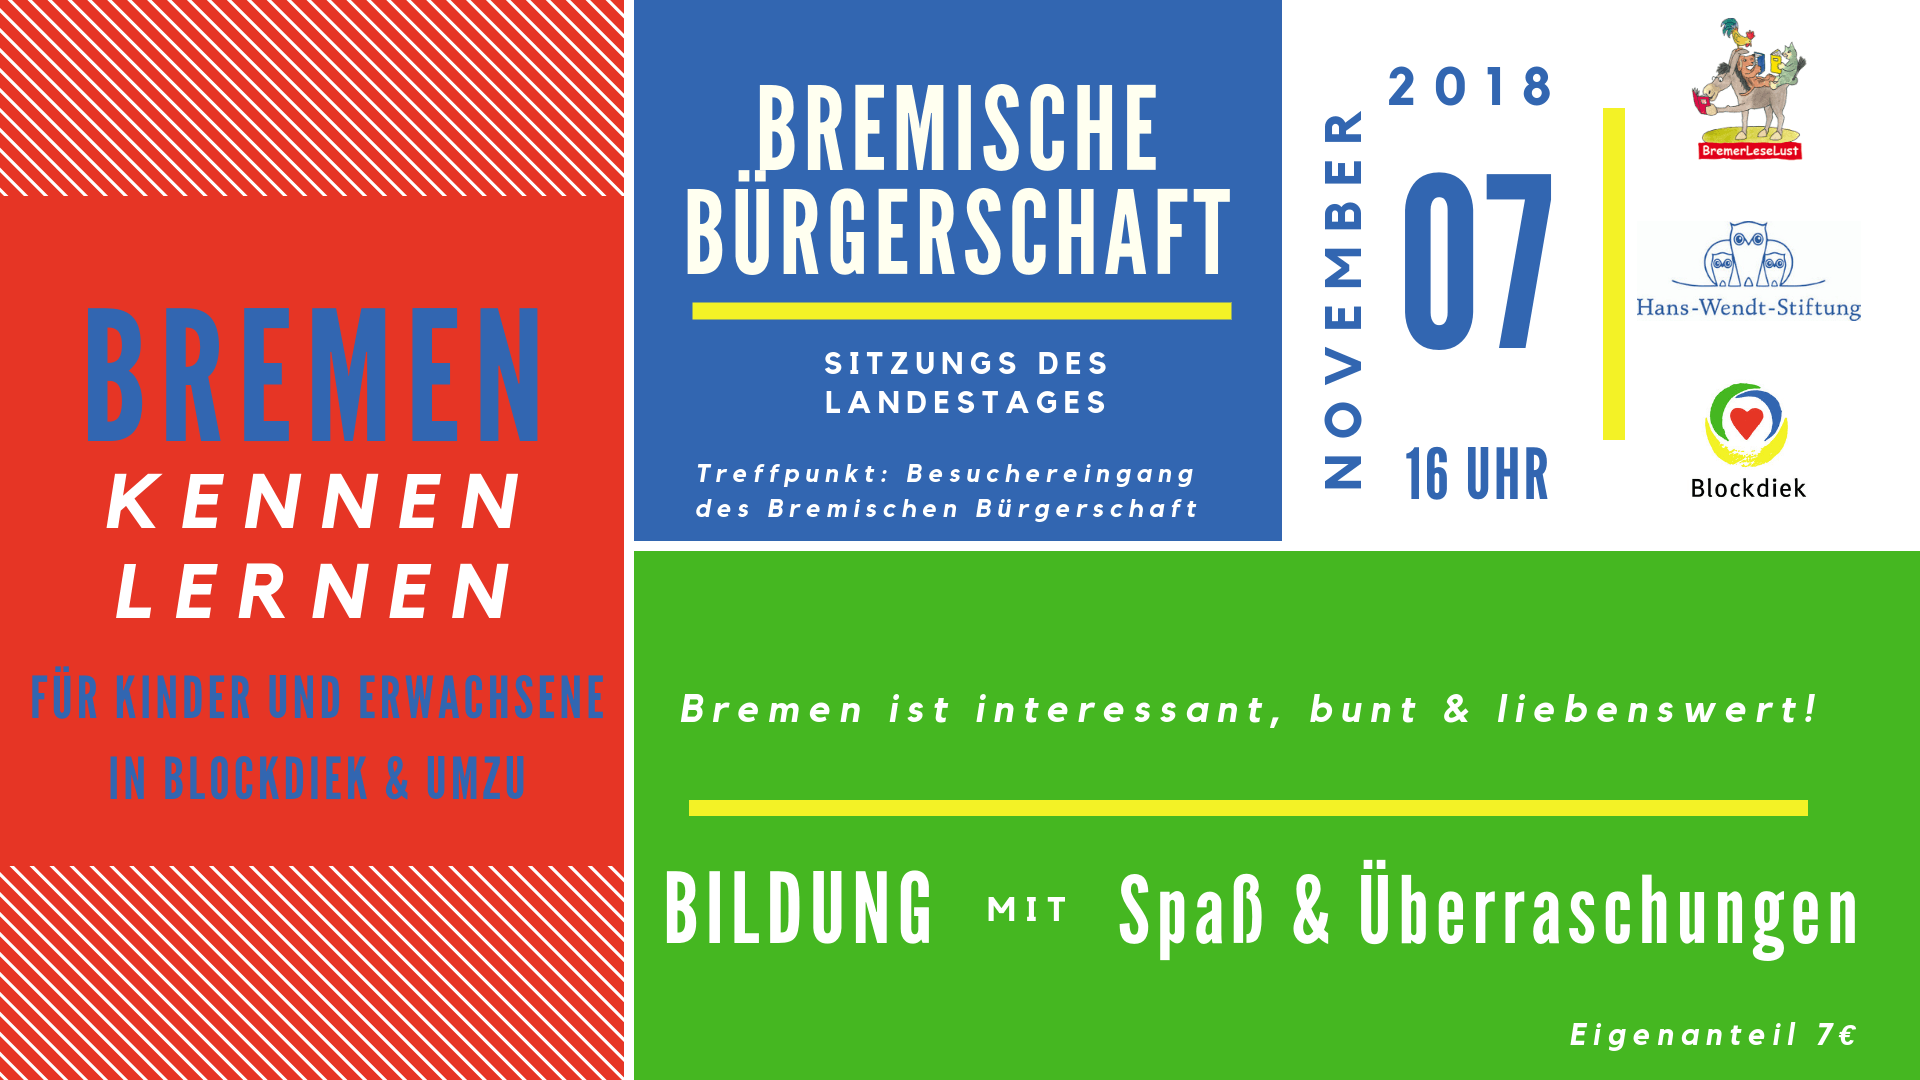 Program Bremen Kennen Lernen November 07 2018